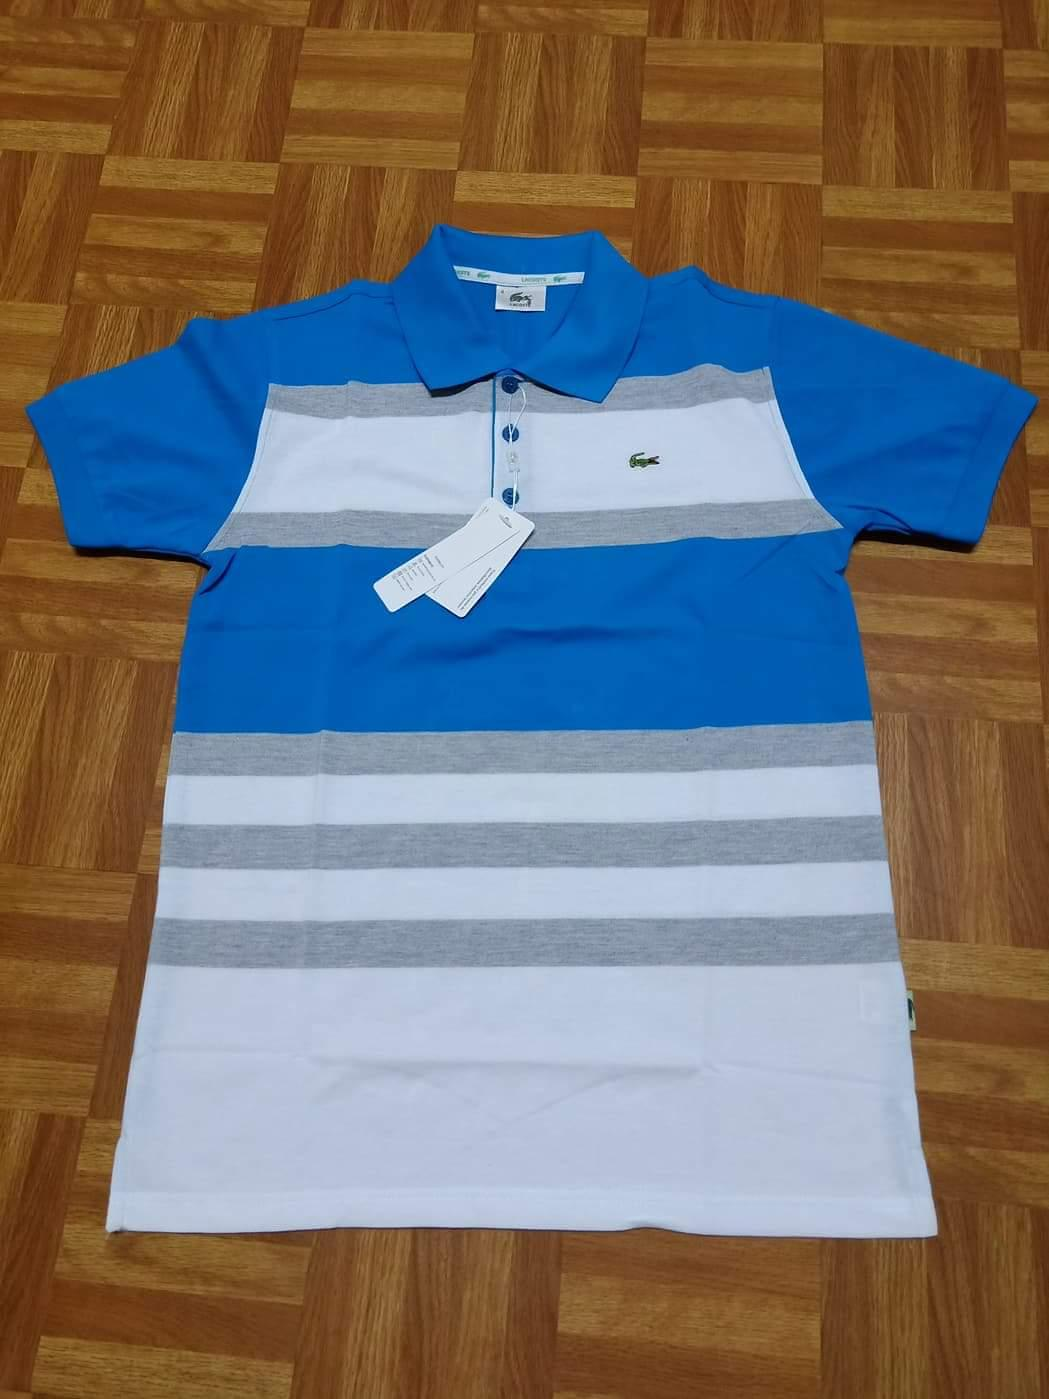 c346e879cab09 Lacoste Polo Shirt Price List Philippines - BCD Tofu House